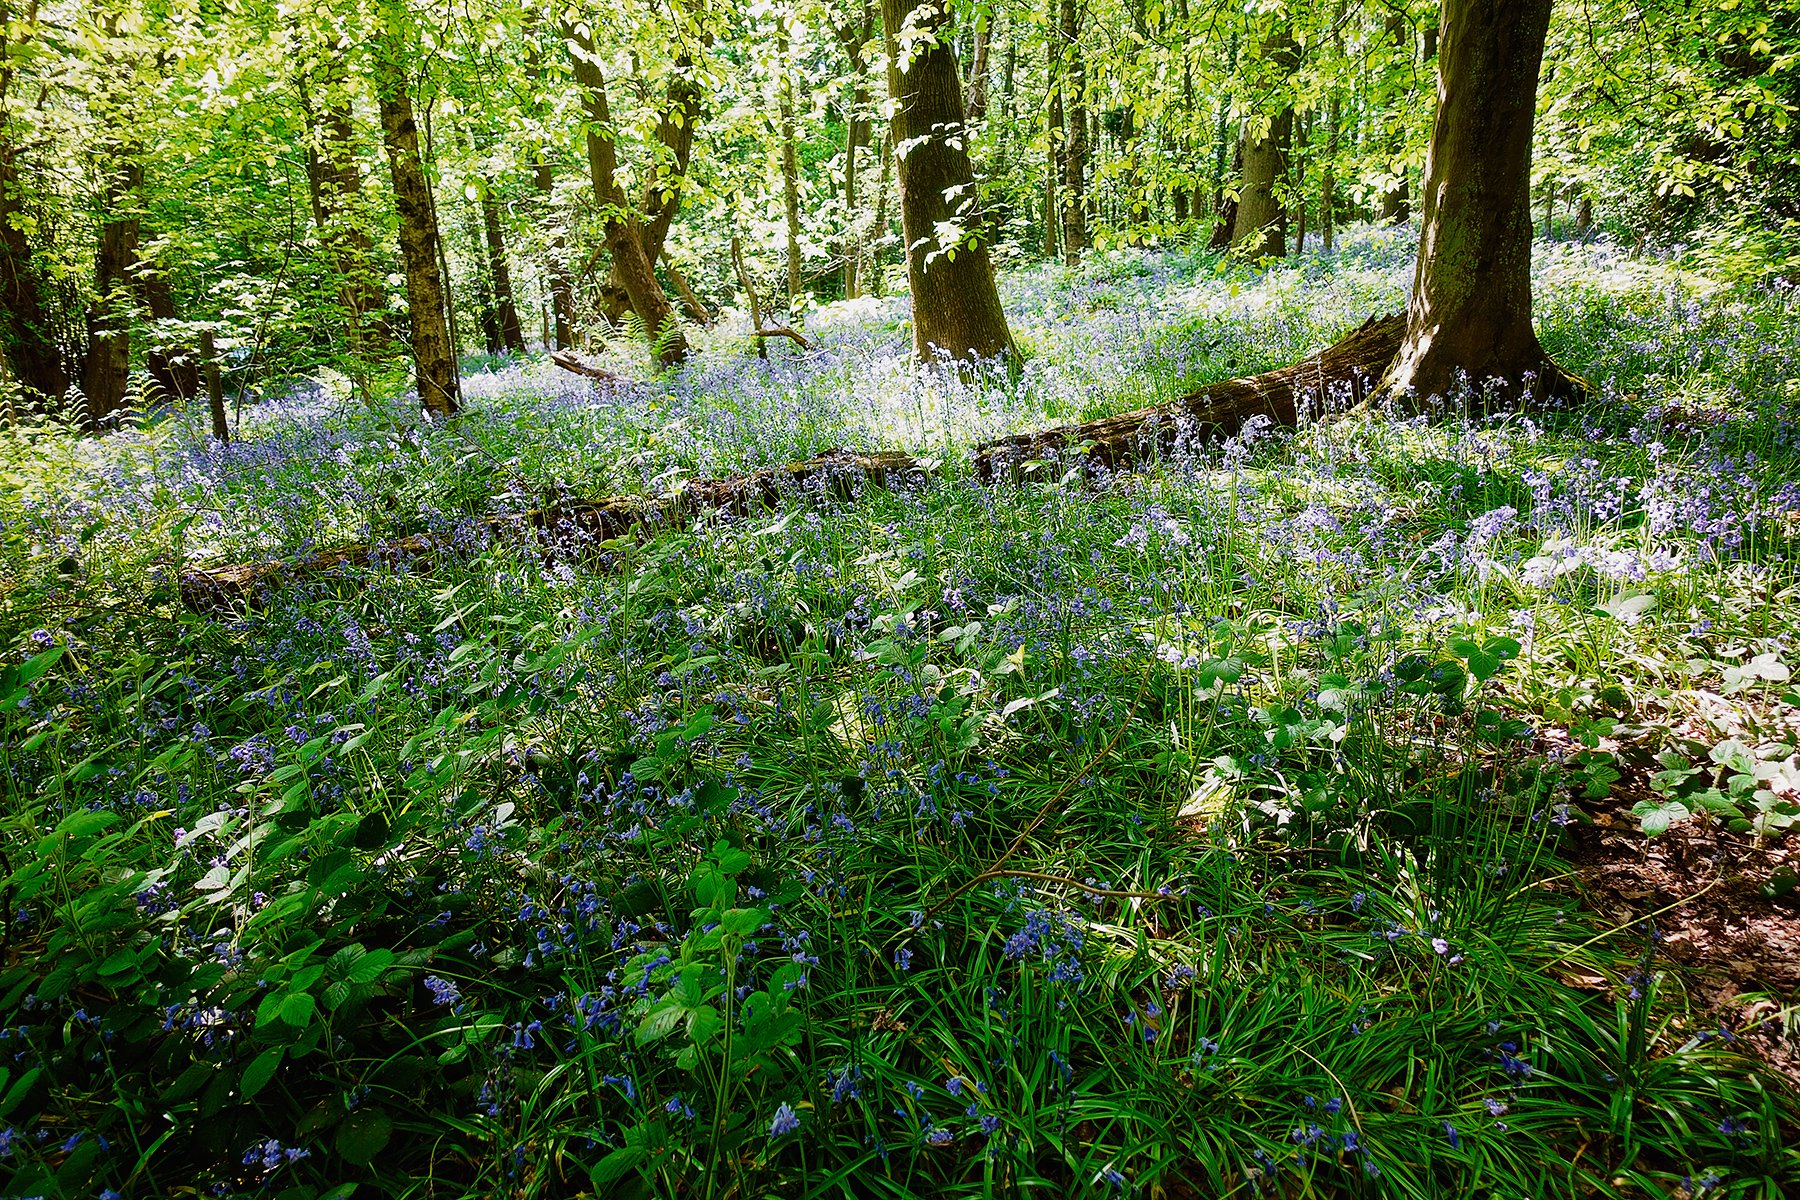 Bluebells in Ecclesall Woods in Sheffield